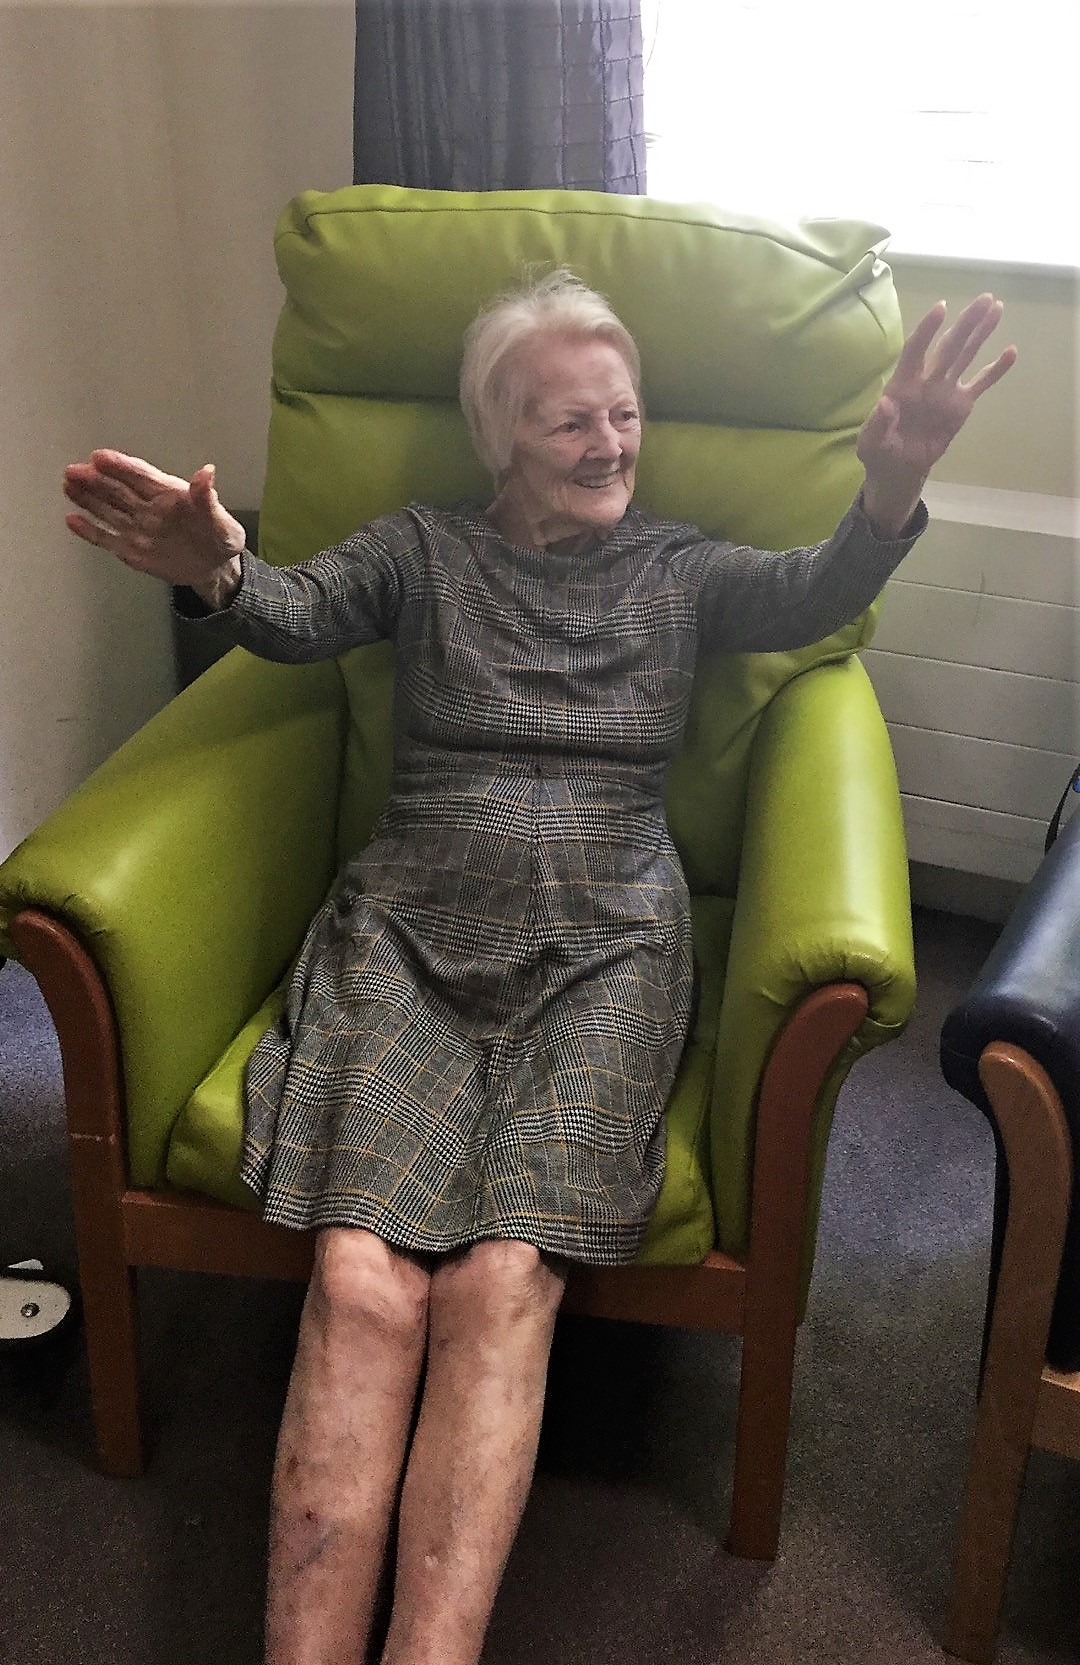 Lady doing armchair exercises